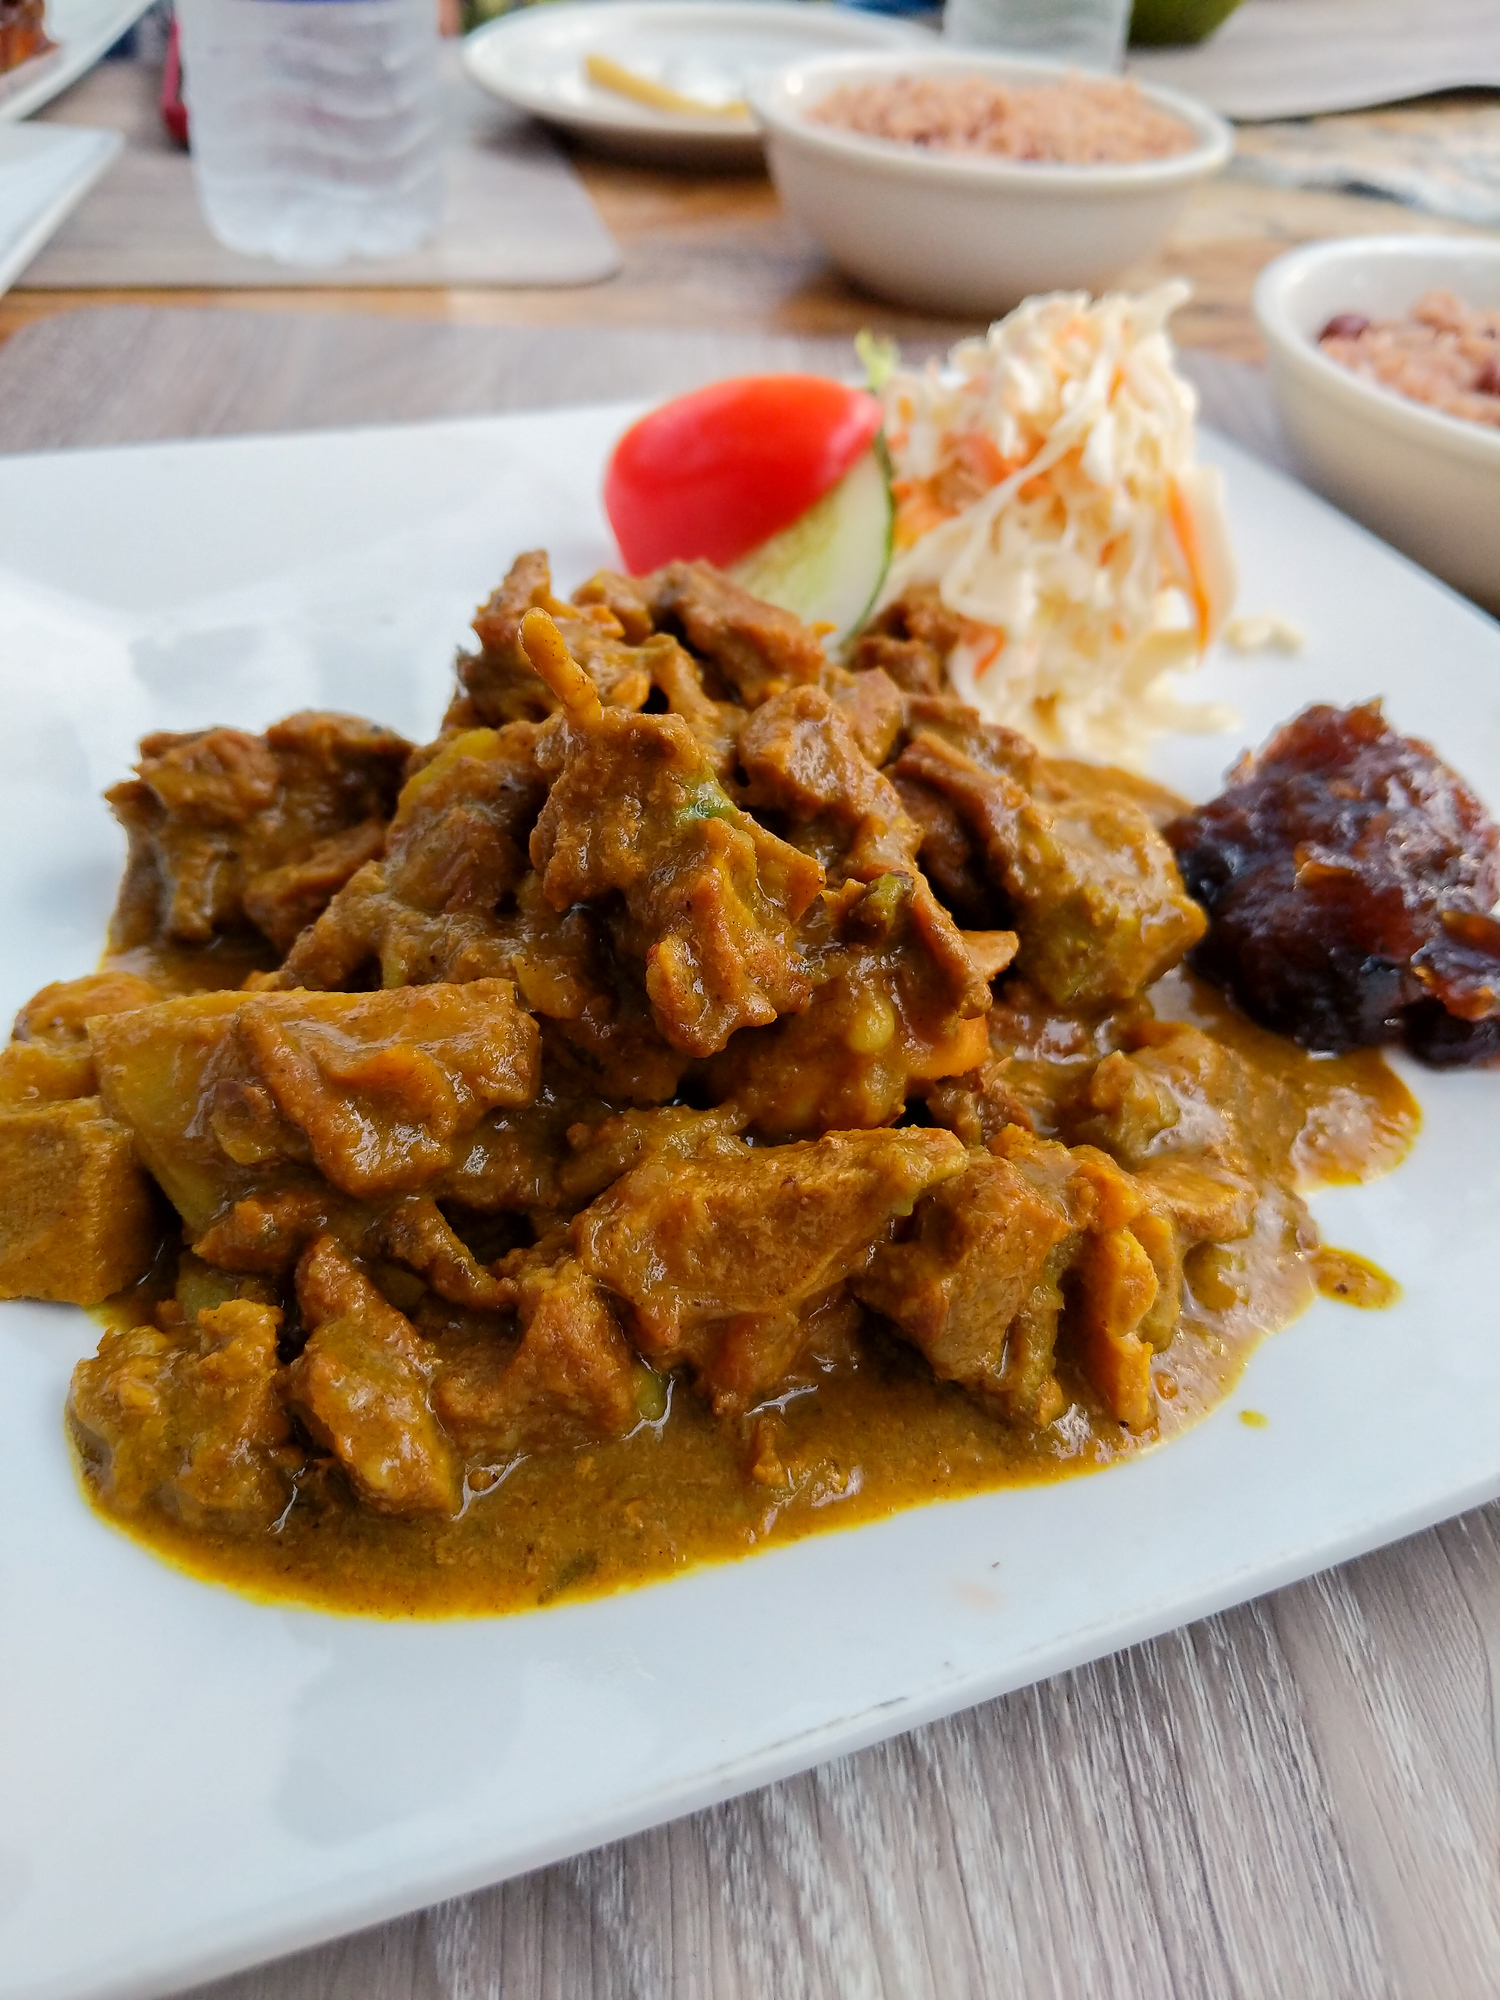 Curry mutton is just one traditional Jamaican food you need to try. The ultimate guide for what to eat in Jamaica, our best picks for 27 dishes, 6 desserts and 12 drinks you won't want to leave the island without trying.